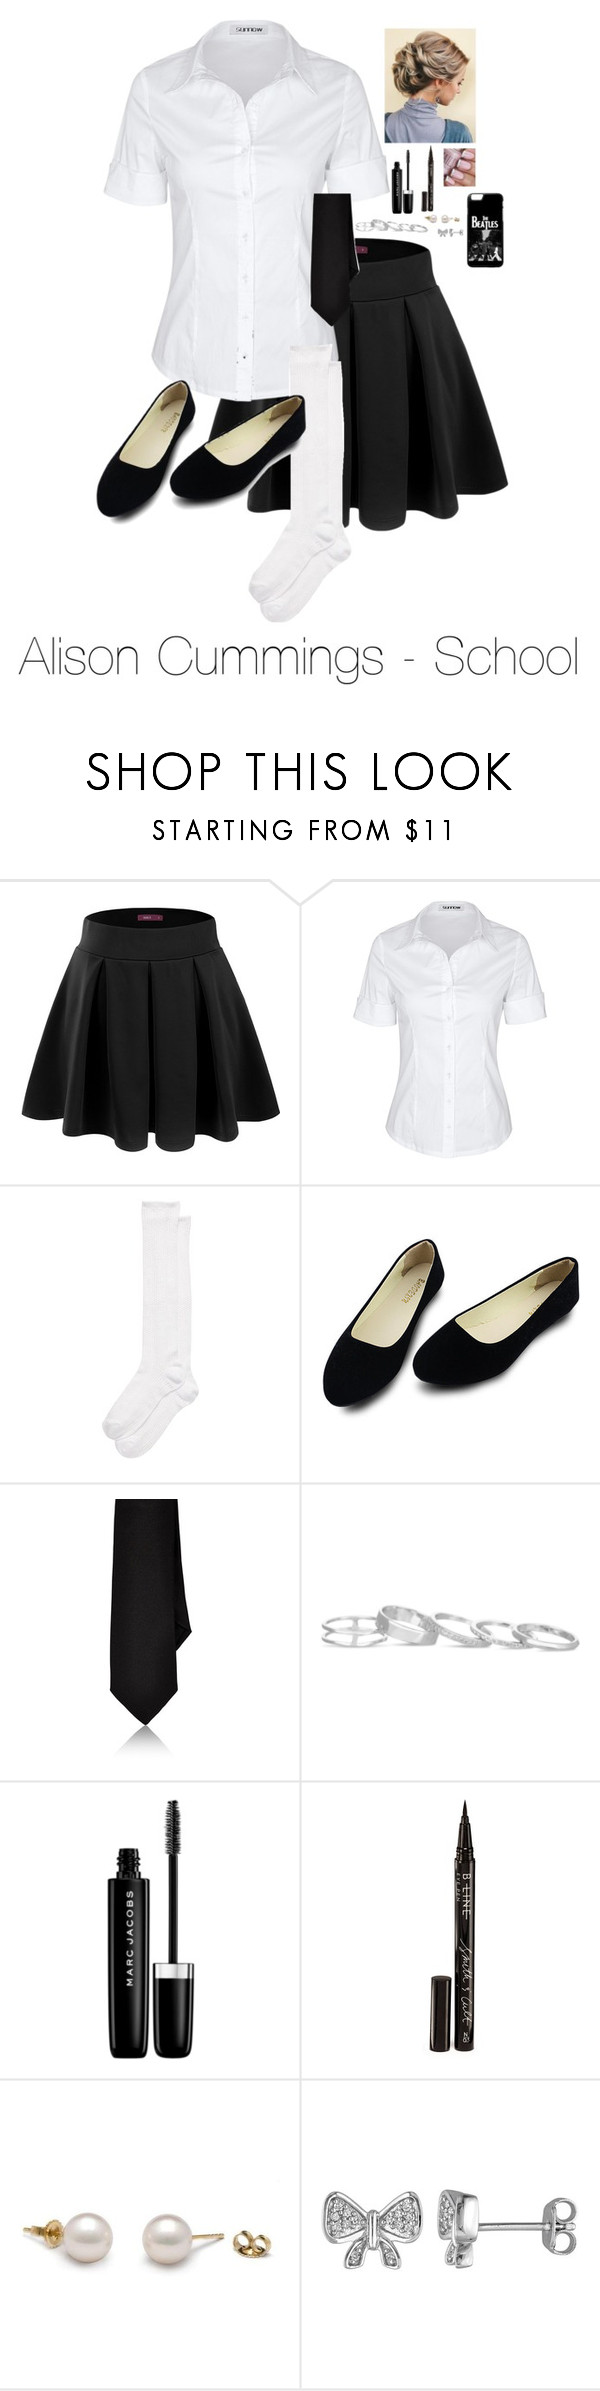 """""""Alison Cummings - School"""" by directioner-four-ever on Polyvore featuring Doublju, Kate Spade, Barneys New York, Kendra Scott, Marc Jacobs, Smith & Cult and Laura Ashley"""